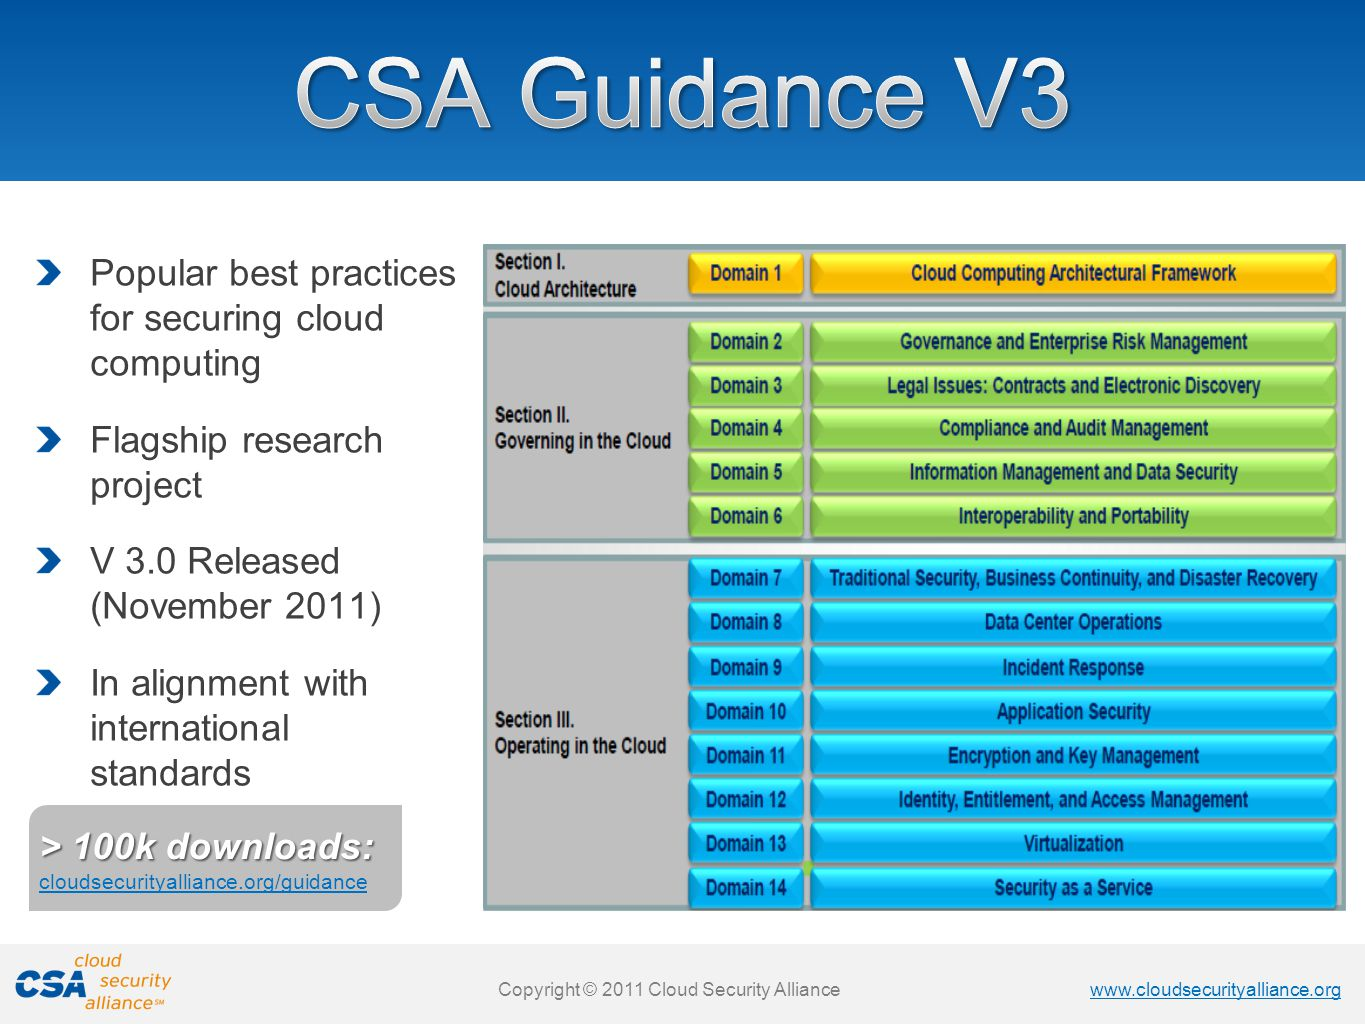 CSA Guidance V3 Popular best practices for securing cloud computing